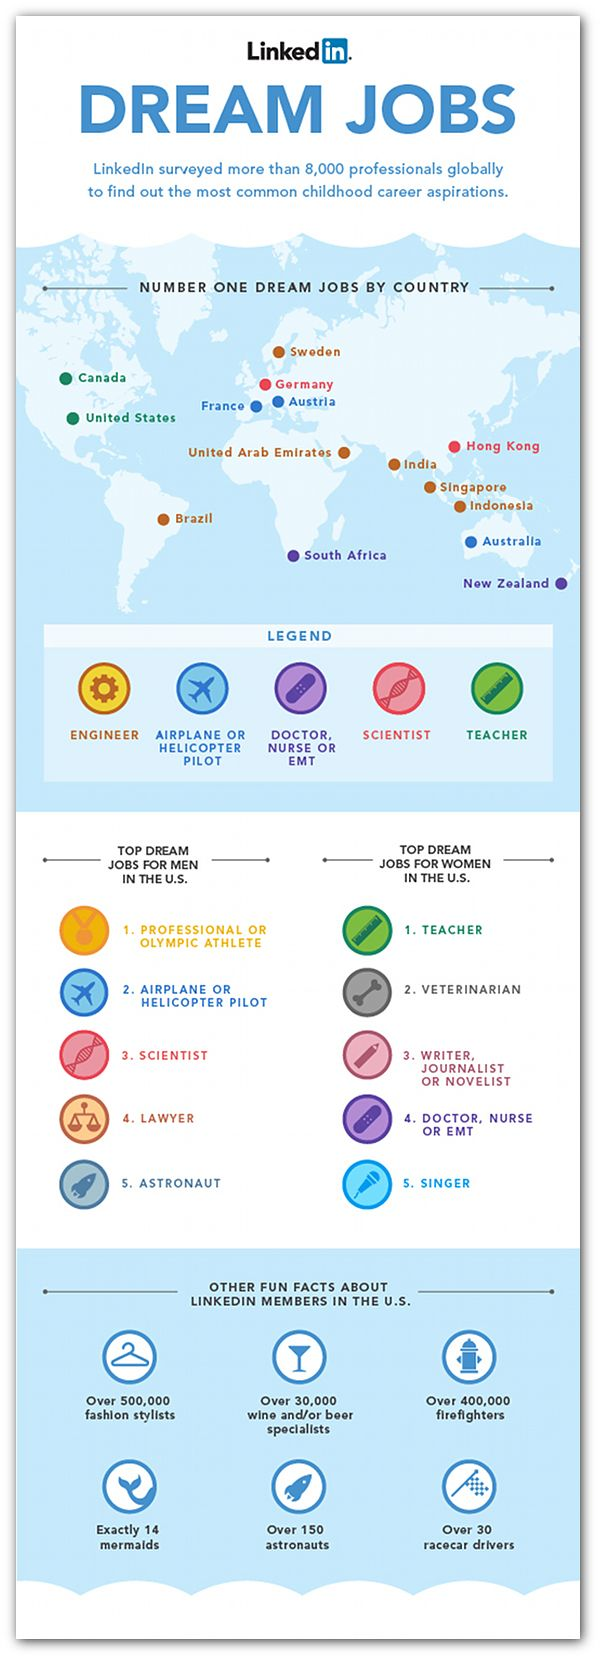 What is Your Dream Job? [INFOGRAPHIC]